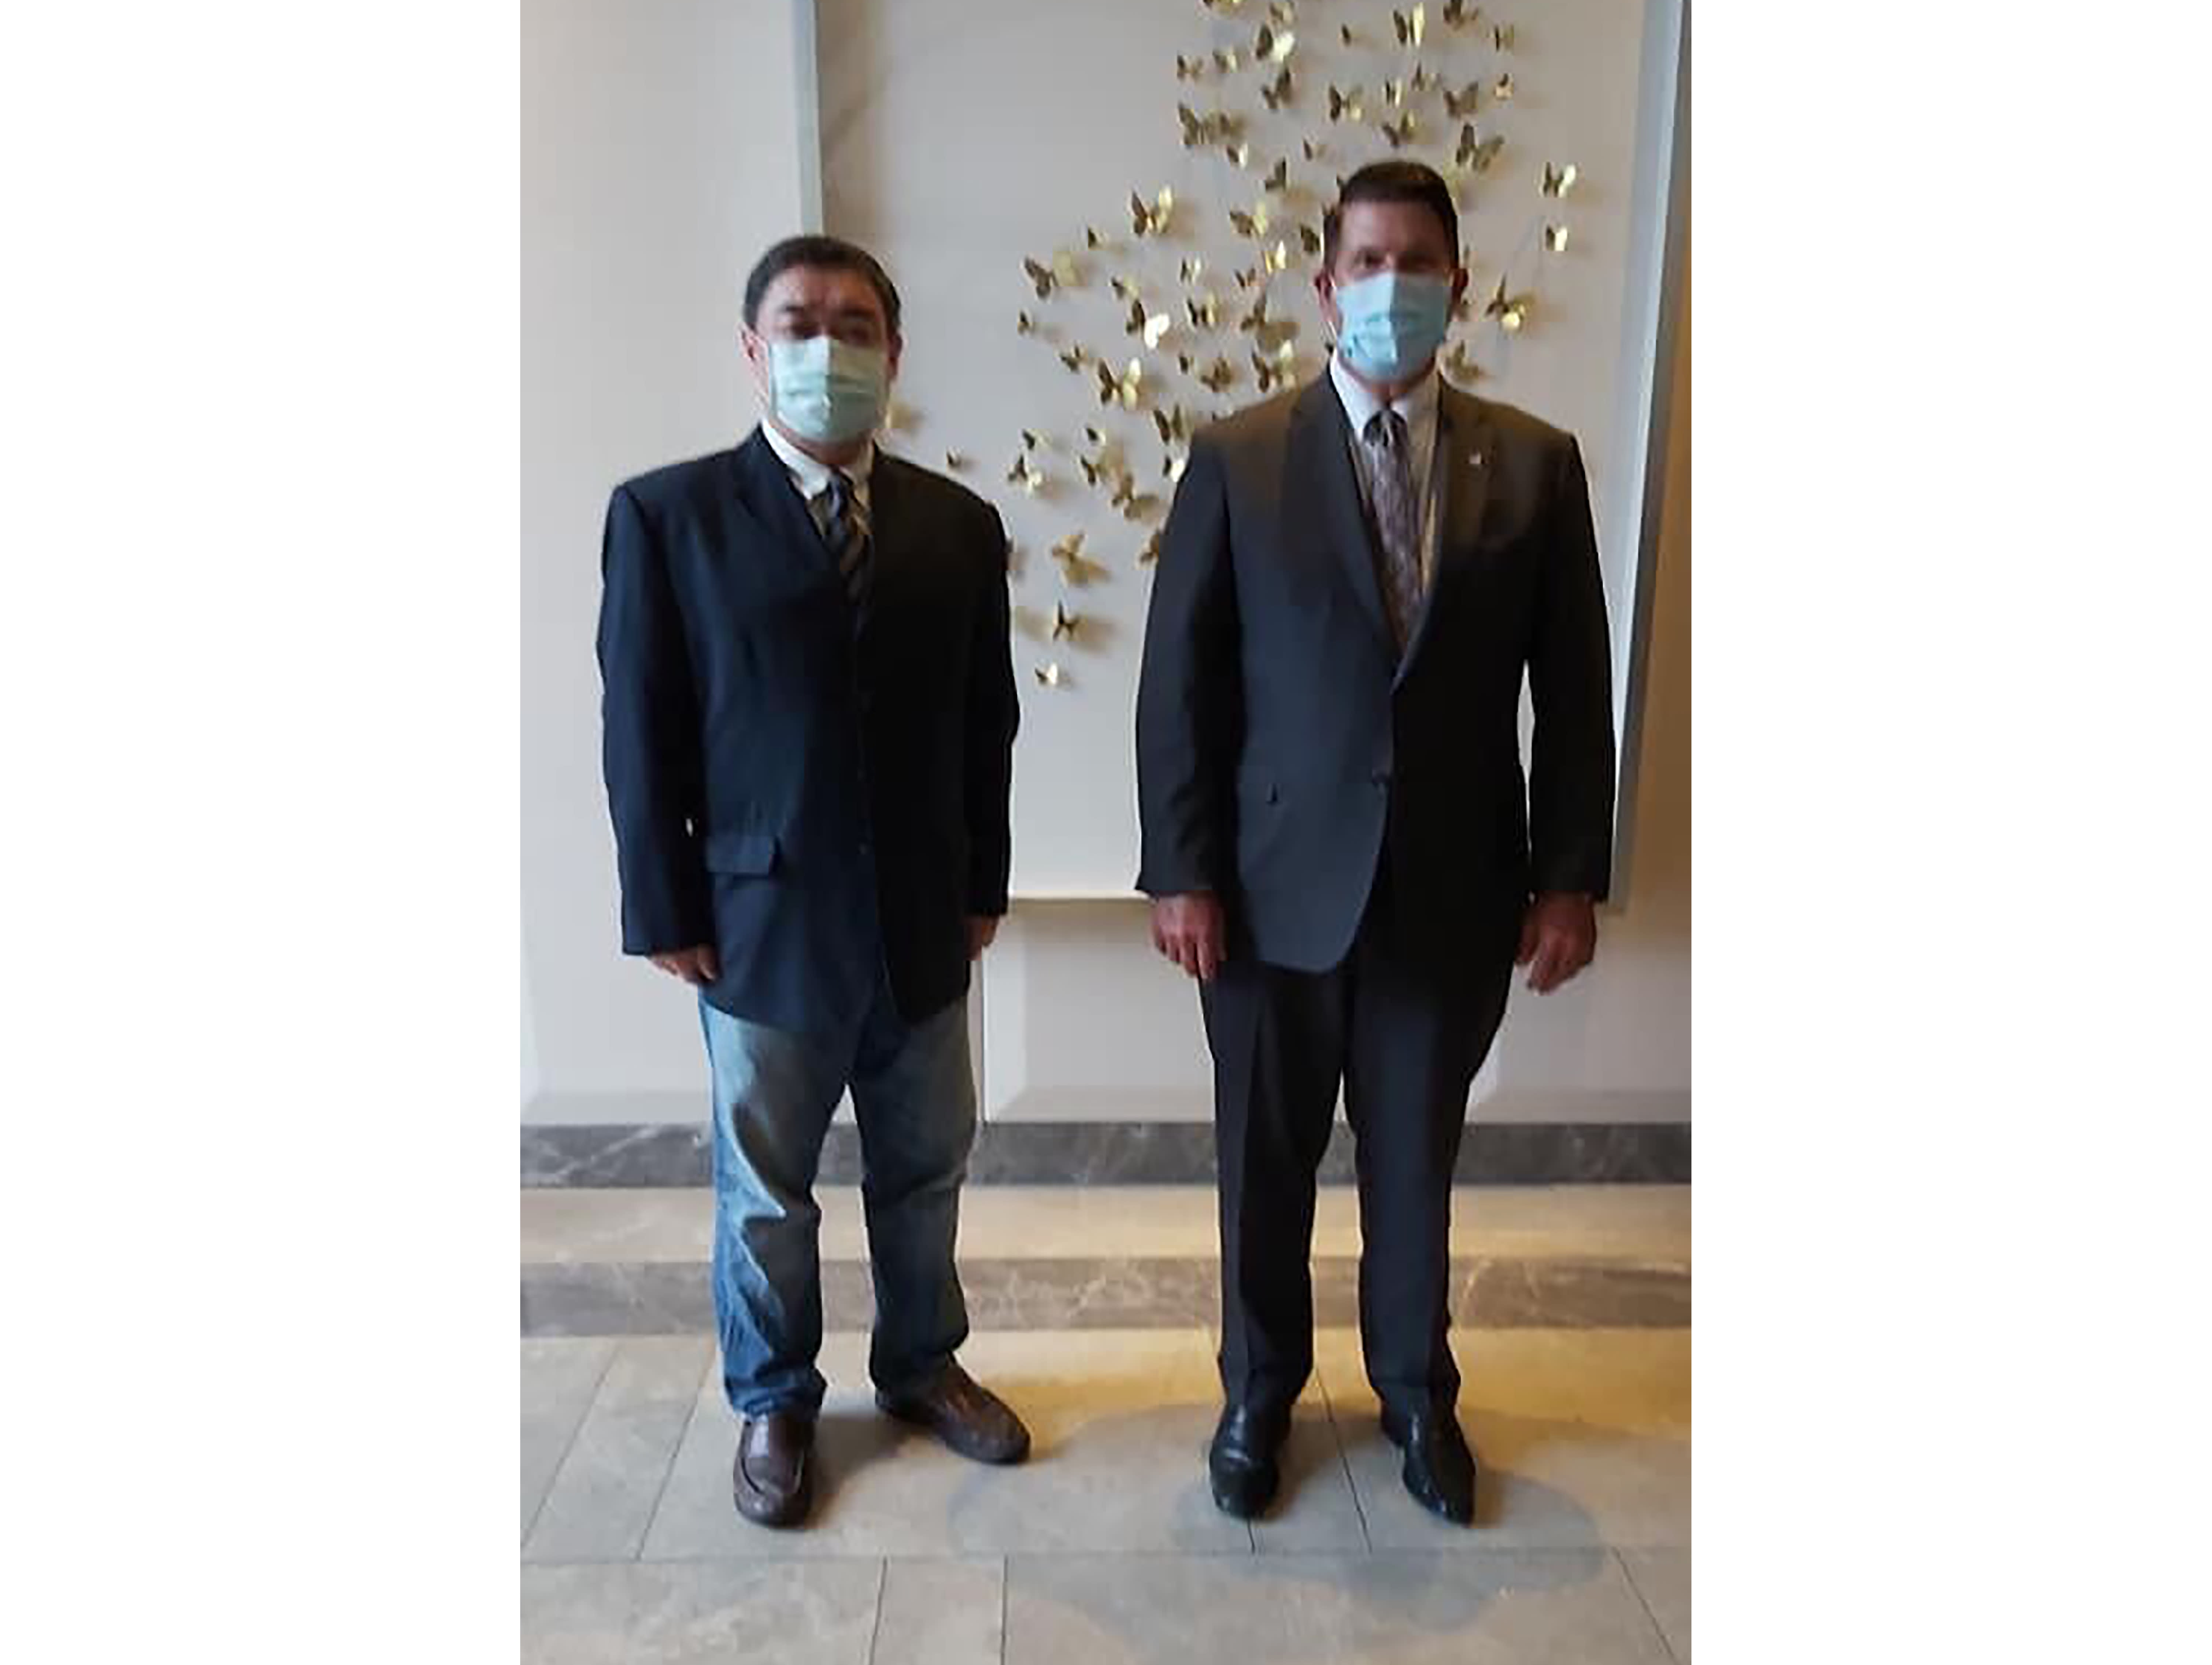 In this photo released by Wu'er Kai Xi, one of the top dissidents from China's Tiananmen Square massacre Wu'er Kai Xi, left, poses with visiting U.S. Under Secretary of State Keith Krach in Taipei, Taiwan, Friday, Sept. 18, 2020. Krach, the second high-level U.S. envoy to visit Taiwan in two months began a day of closed-door meetings Friday as China conducted military drills near the Taiwan Strait after threatening retaliation. (Wu'er Kai Xi via AP)